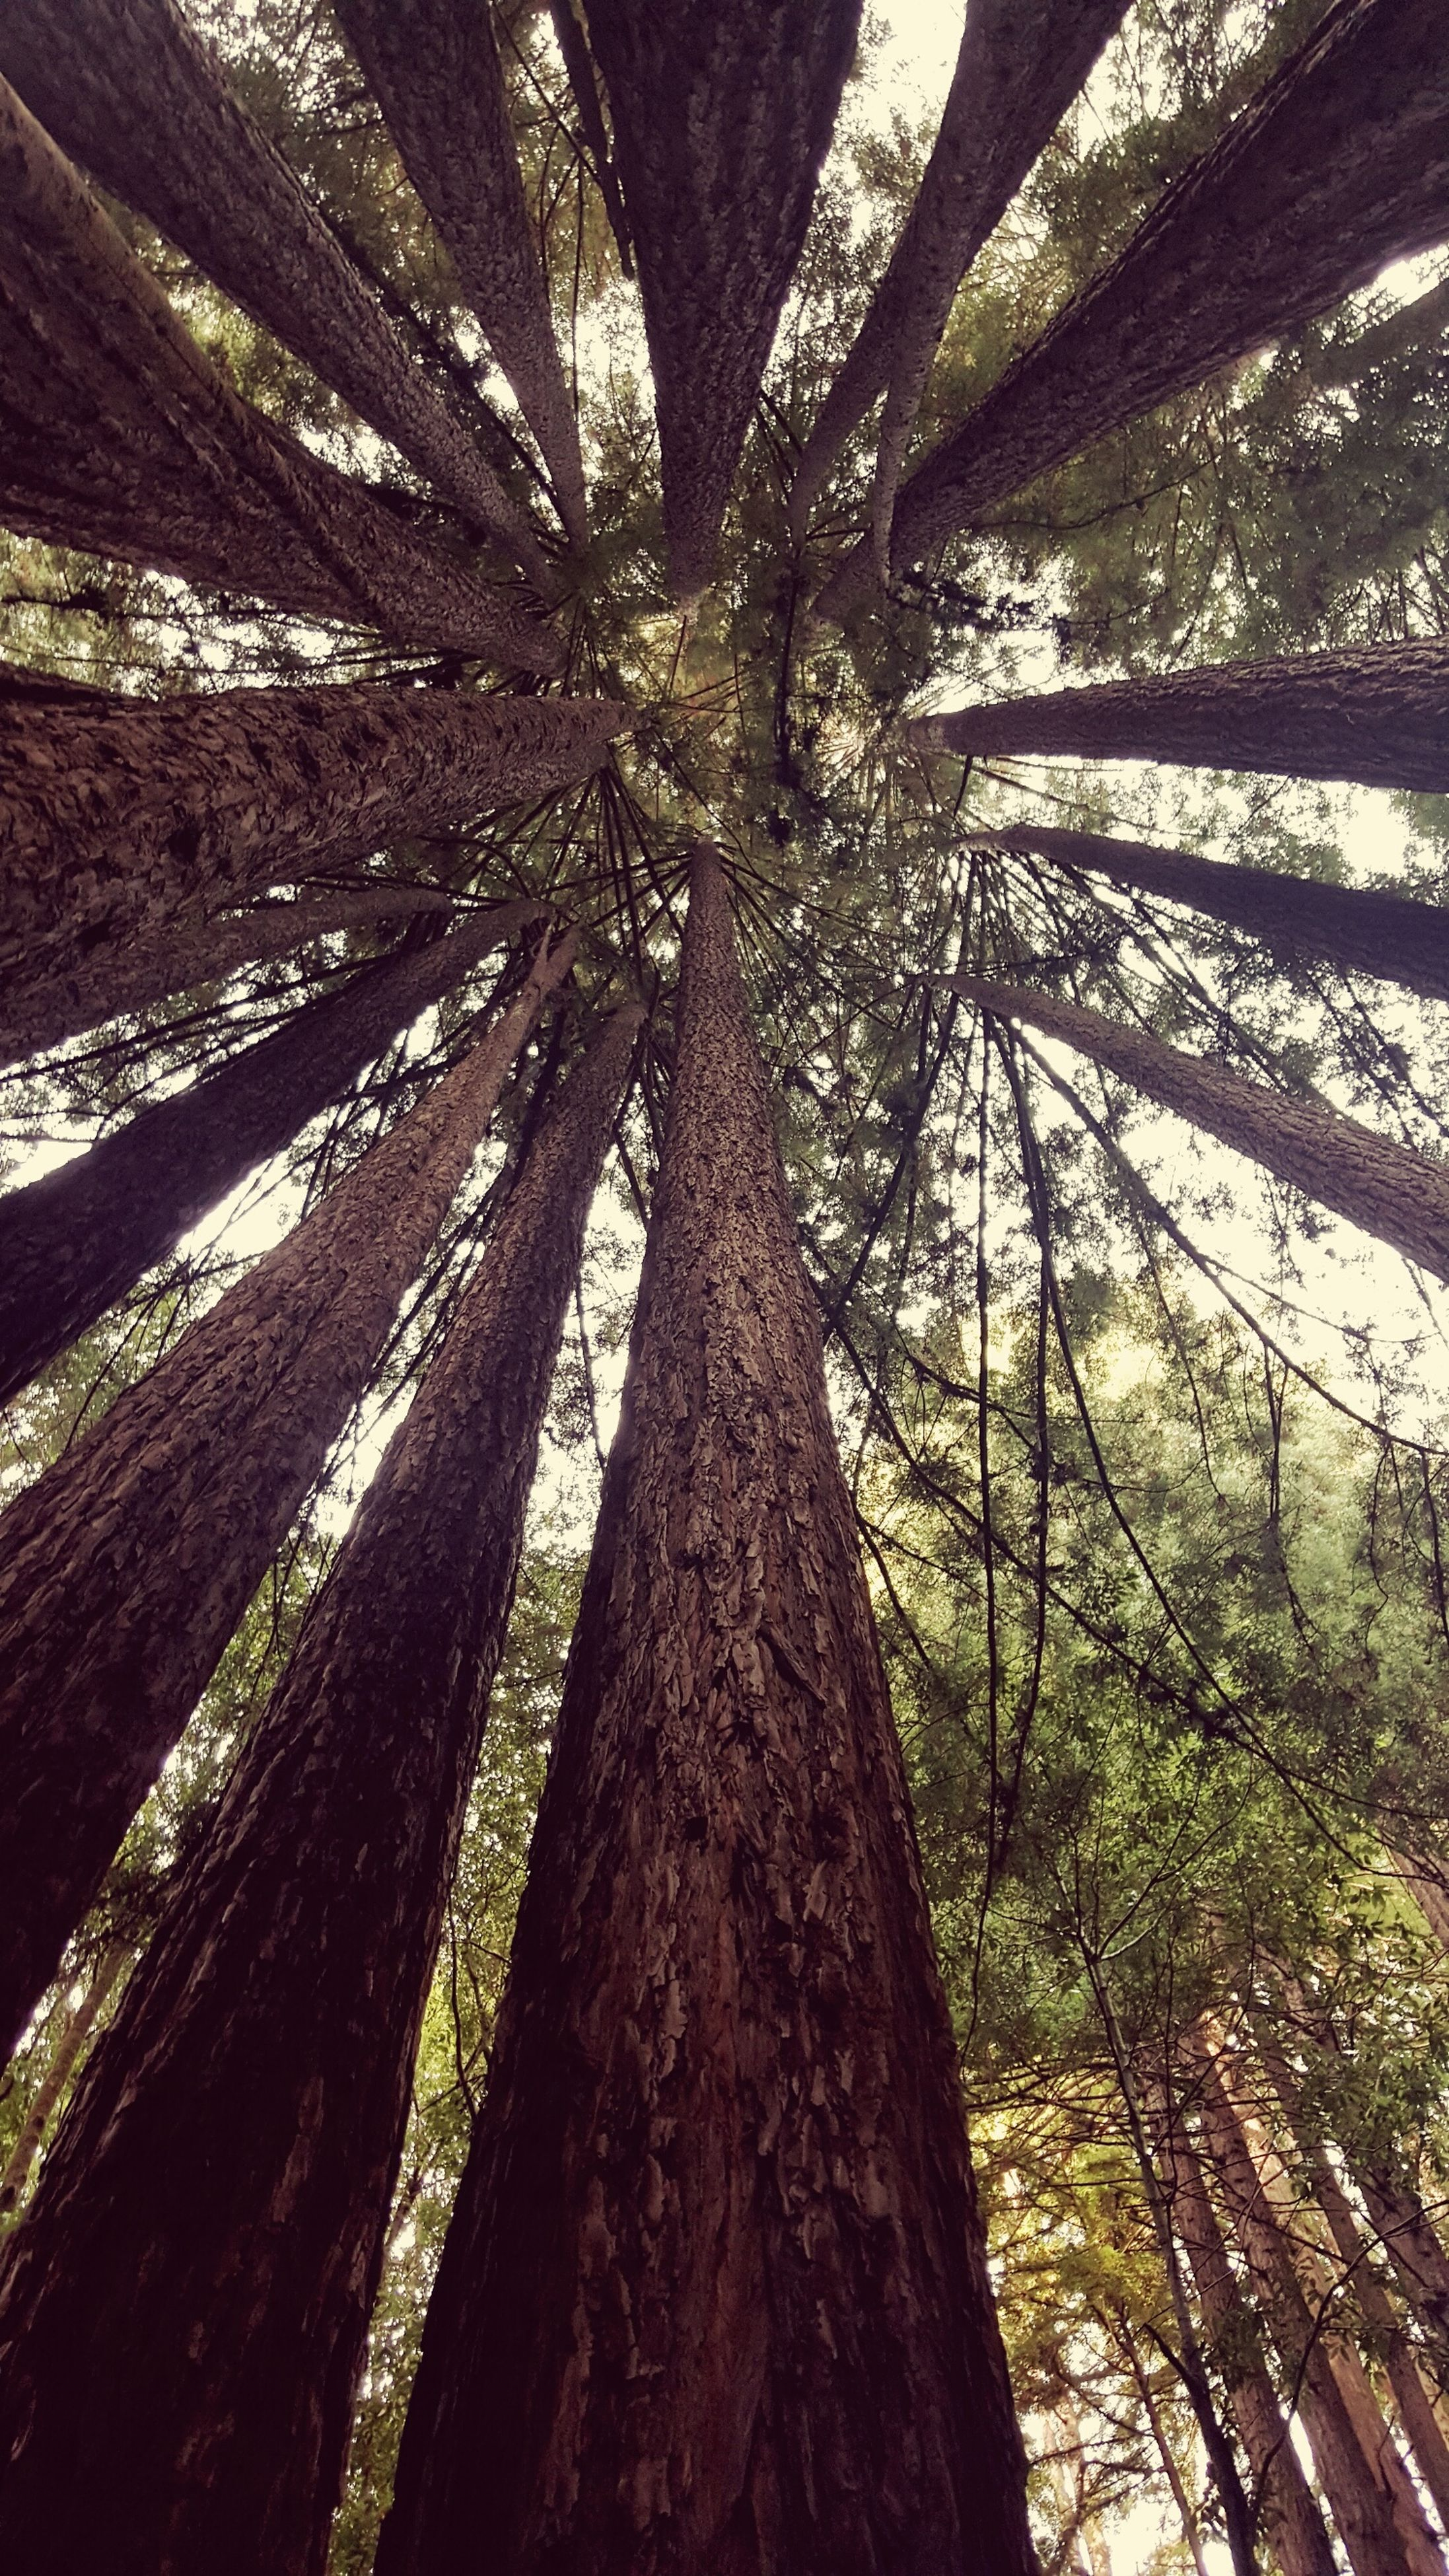 tree, tree trunk, growth, tranquility, nature, low angle view, beauty in nature, branch, tranquil scene, day, sunlight, outdoors, no people, scenics, forest, wood - material, woodland, sky, textured, tall - high